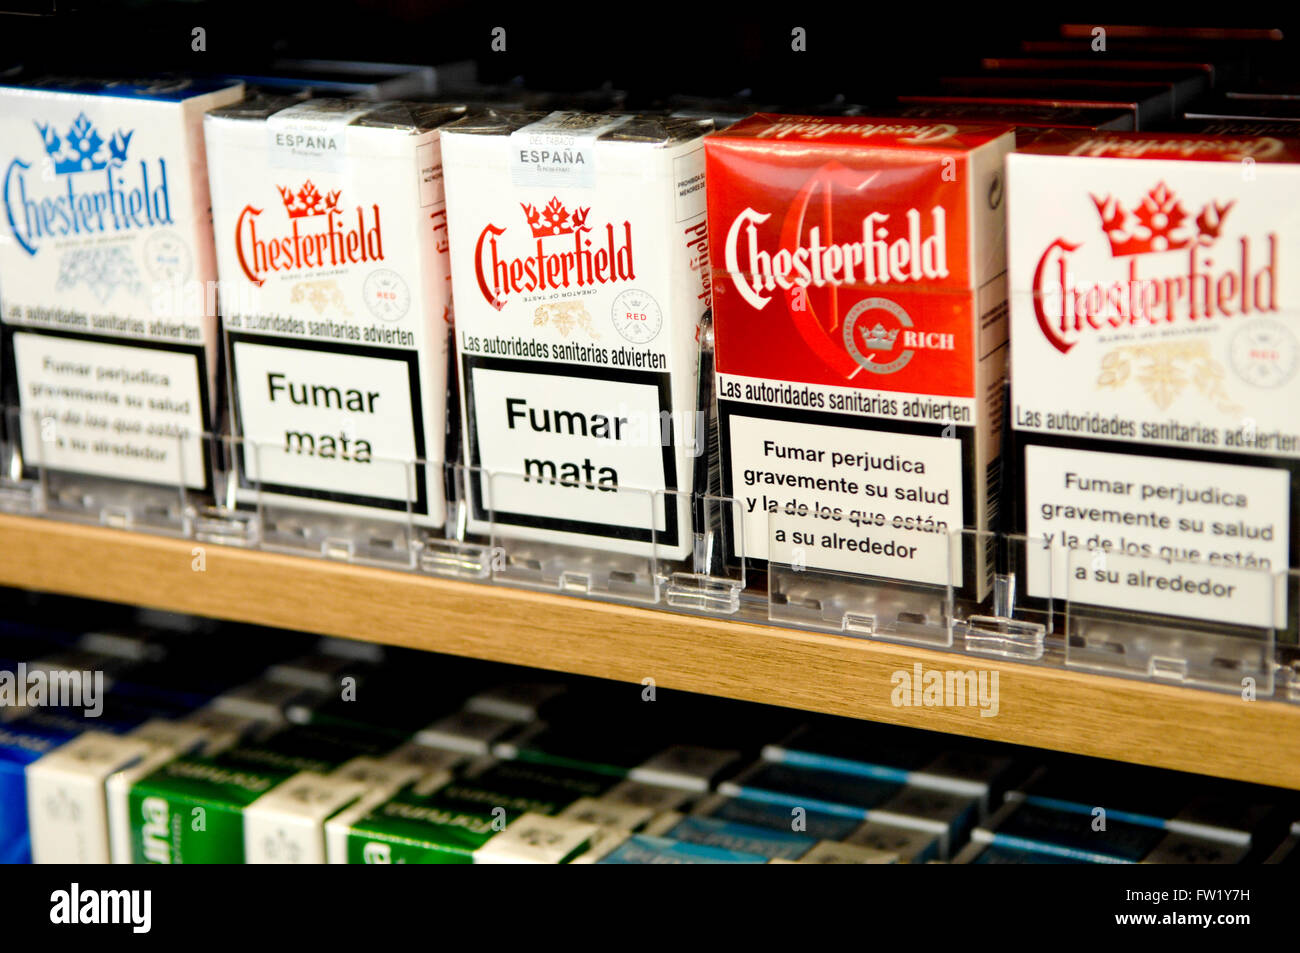 Much carton cigarettes Marlboro Bond